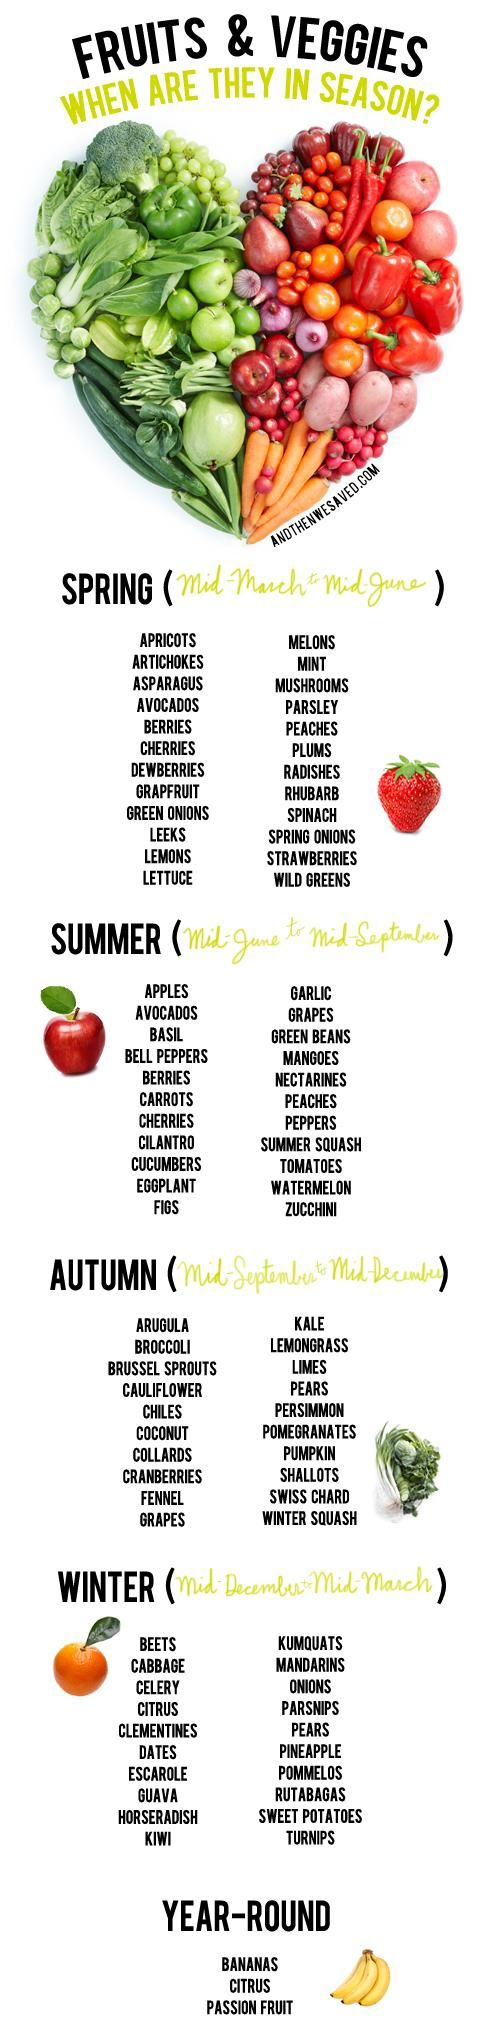 fruits and vegetables when are they in season a handy guide